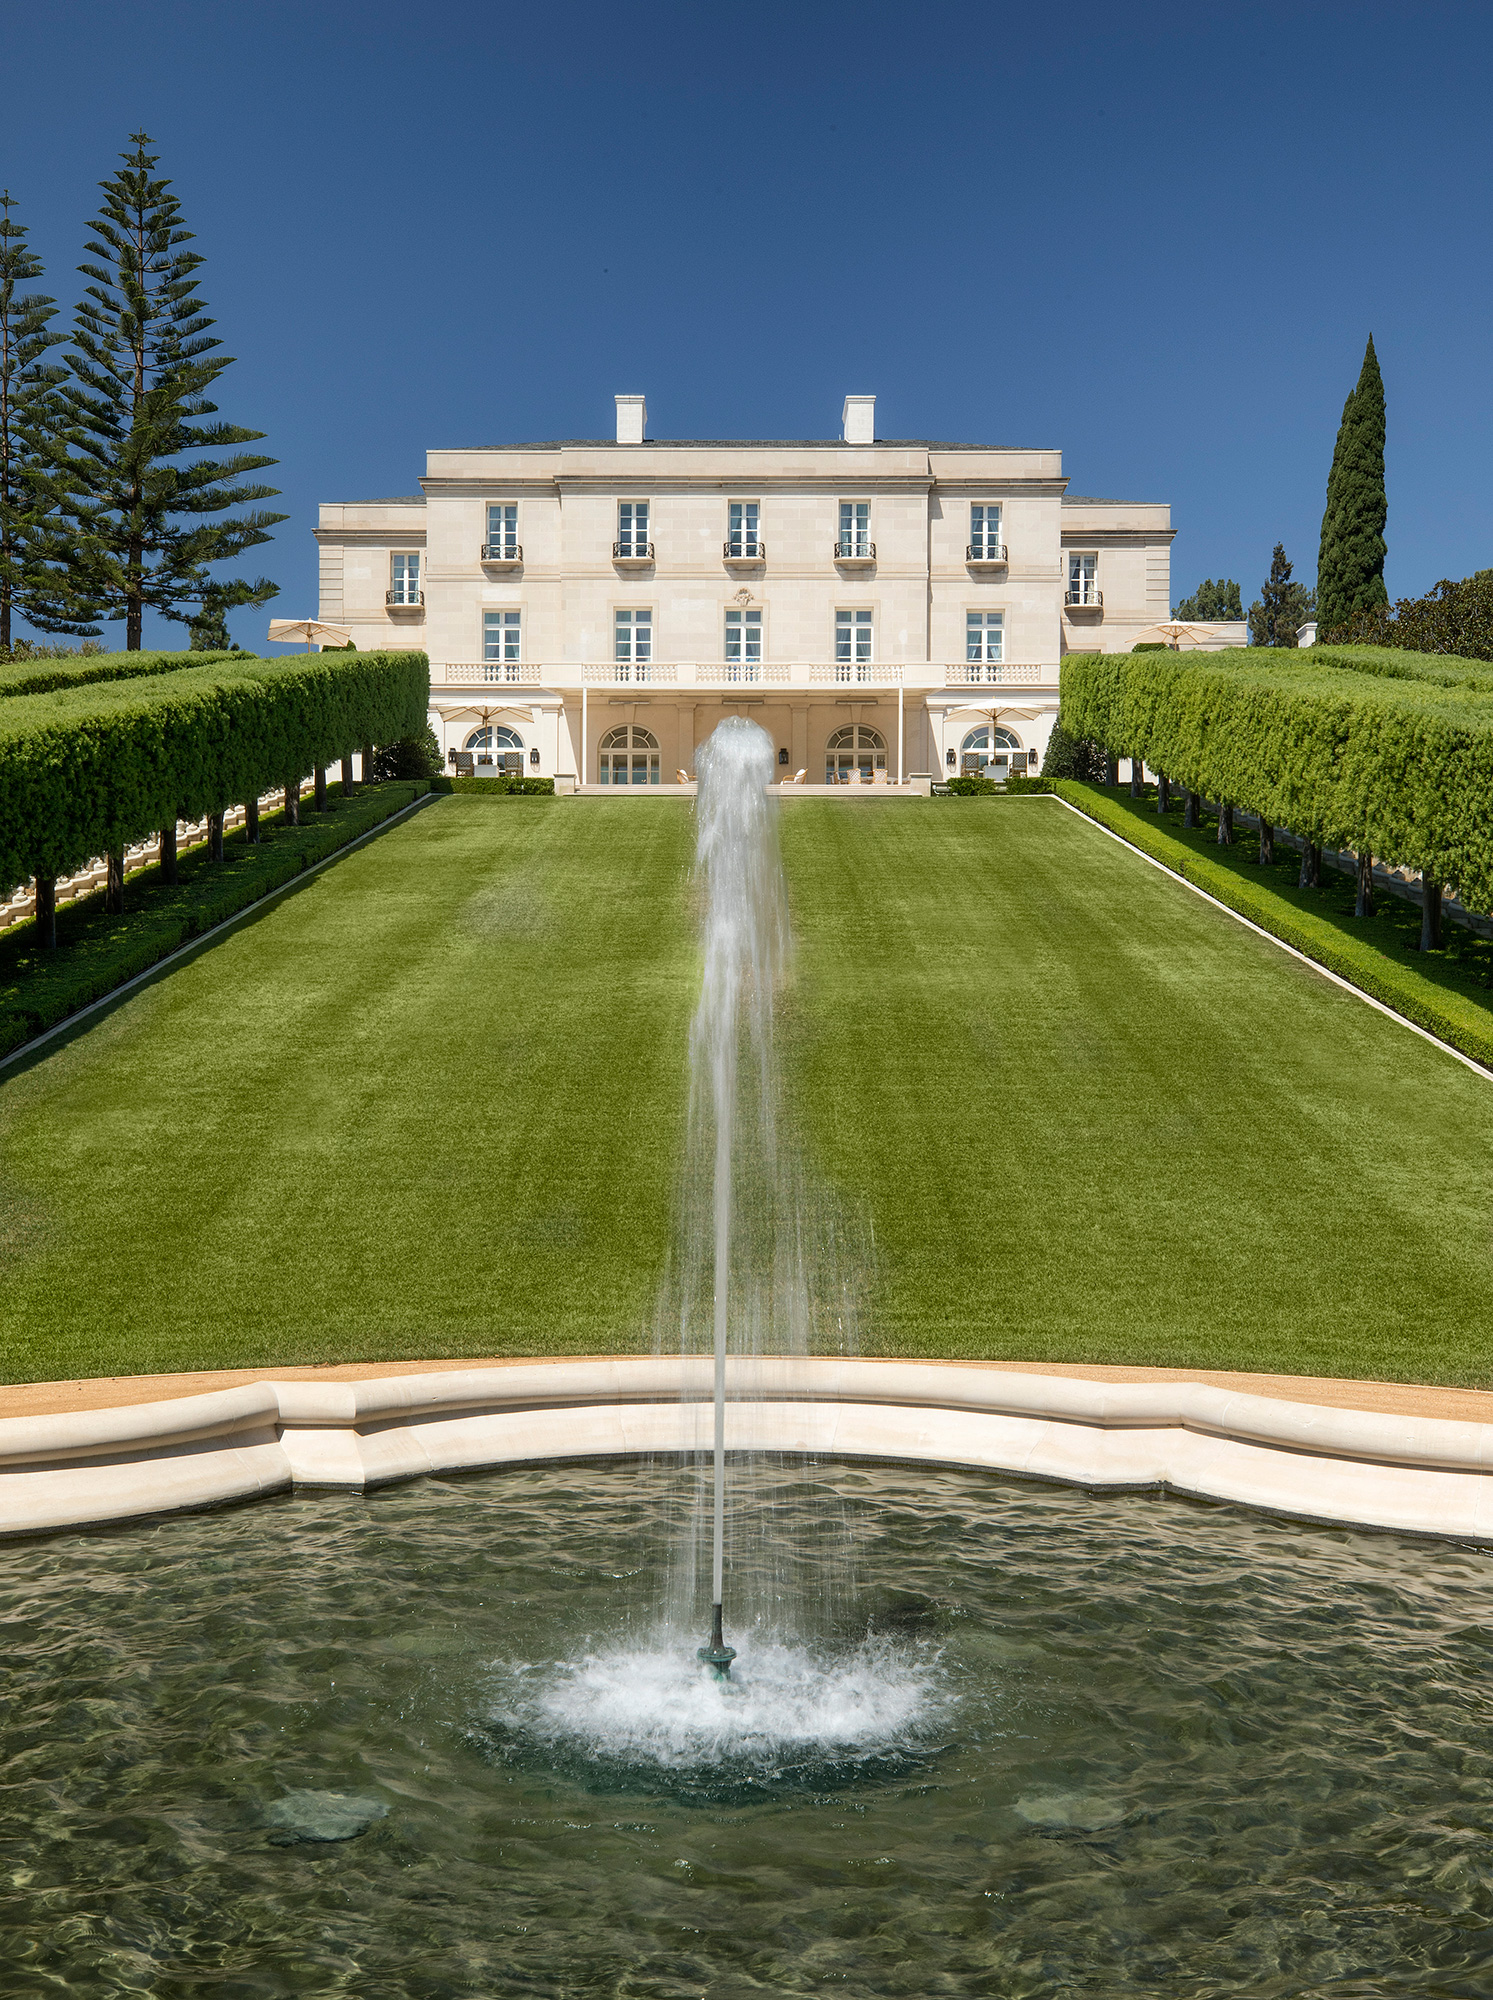 most-expensive-house-america-back-fountain